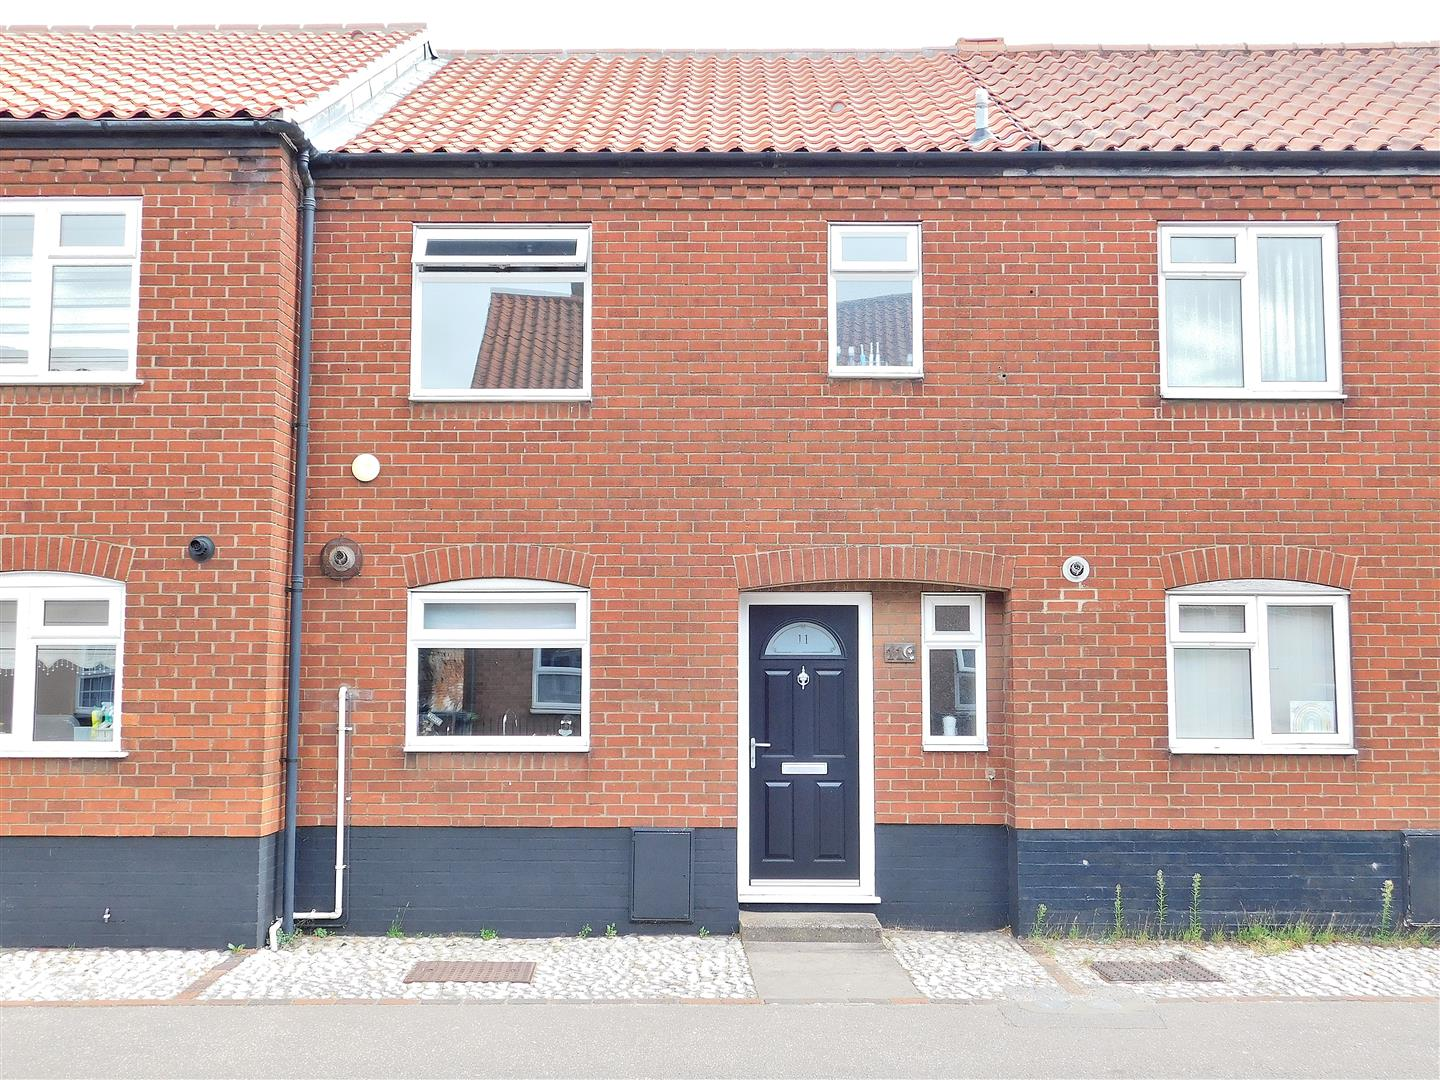 3 bed terraced house for sale in Swaffham, PE37 7DB 0